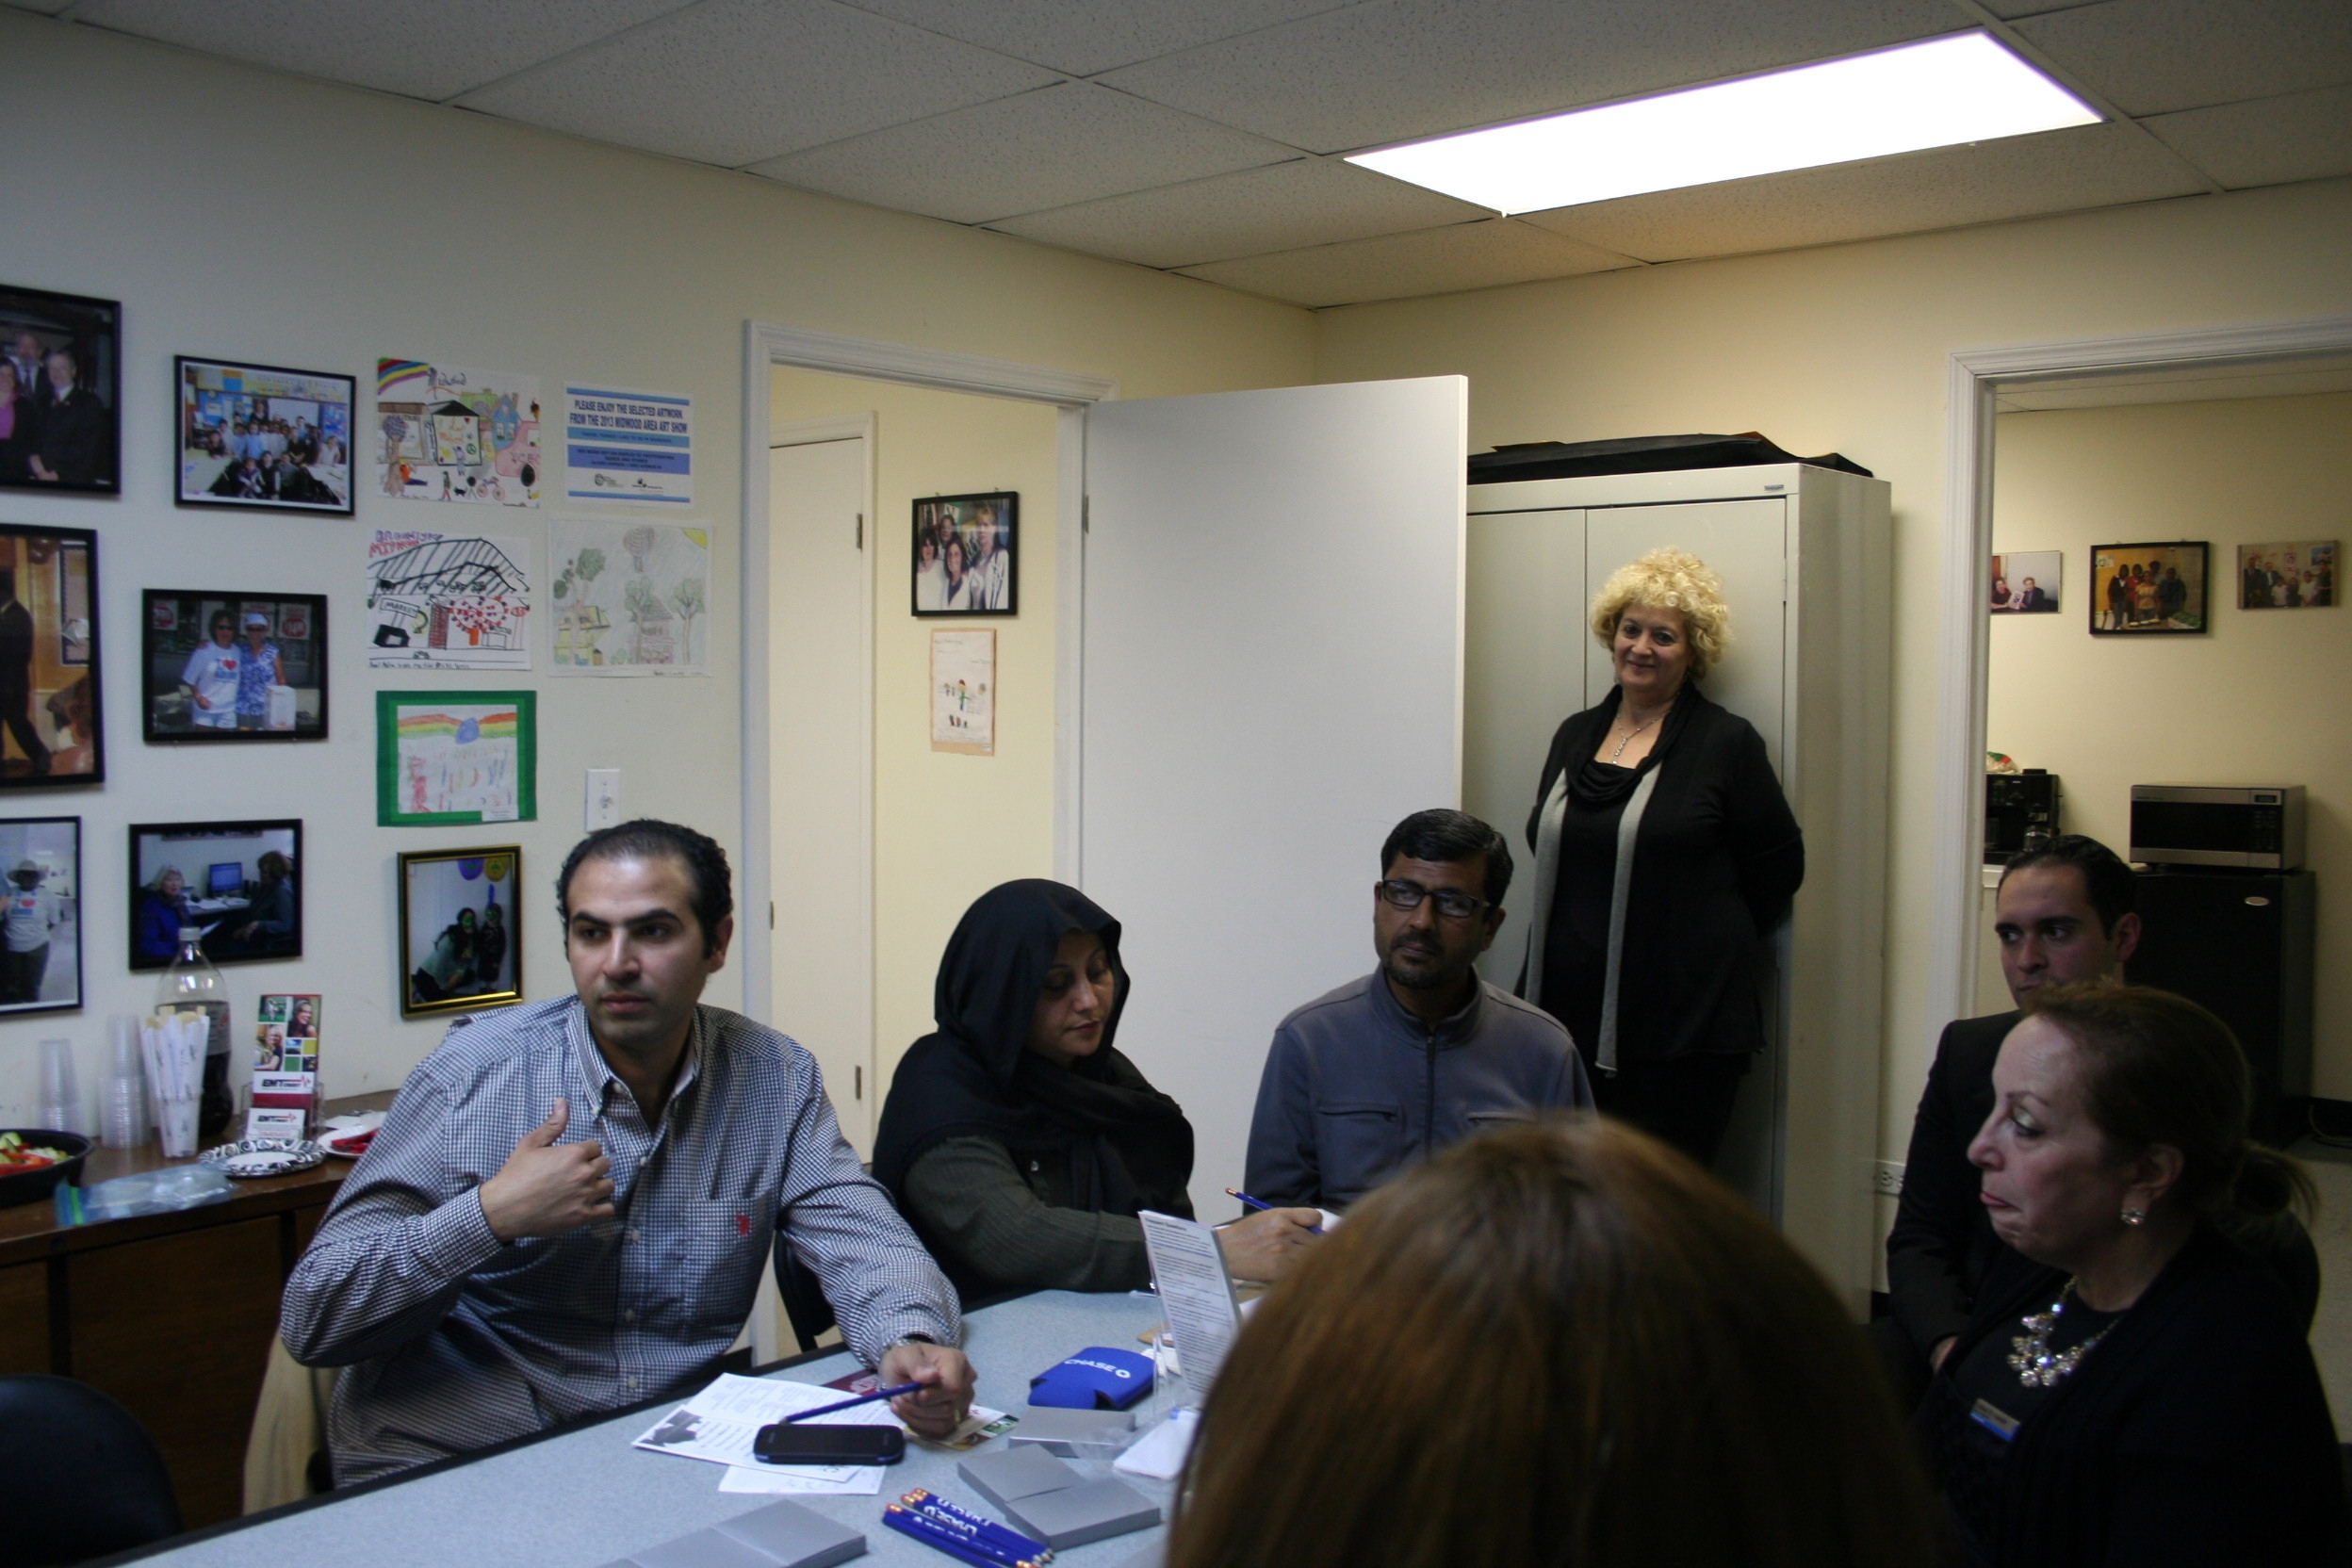 housing workshop highlights midwood development corporation left to right clients ibrahim nabil noar ahmad amtul latif mdc housing counselor nina akopyan chase relationship banker moshe moshiach and chase